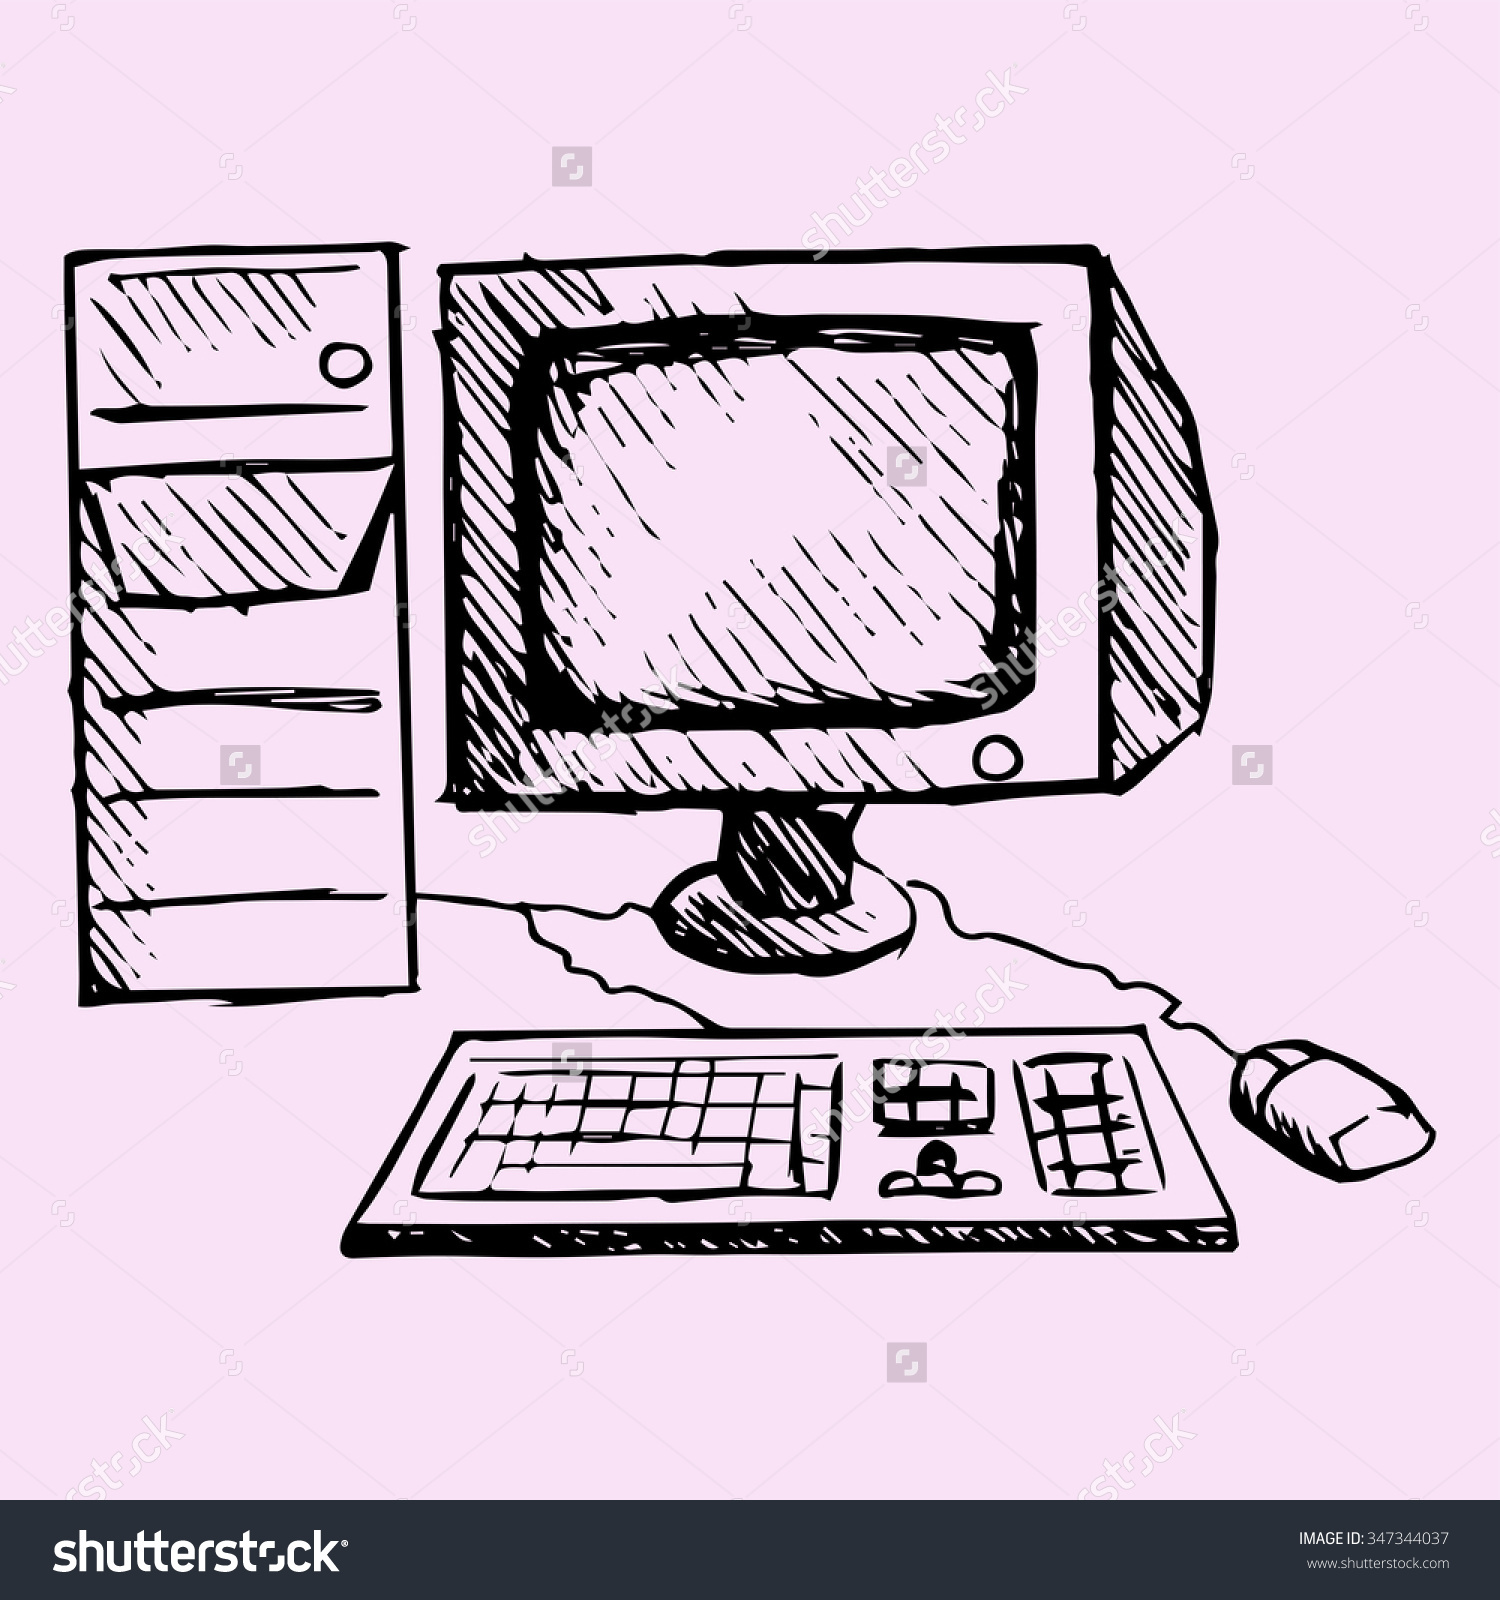 Hand drawn computer keyboard clipart jpg free library Retro Desktop Computer Monitor Keyboard Mouse Stock Illustration ... jpg free library